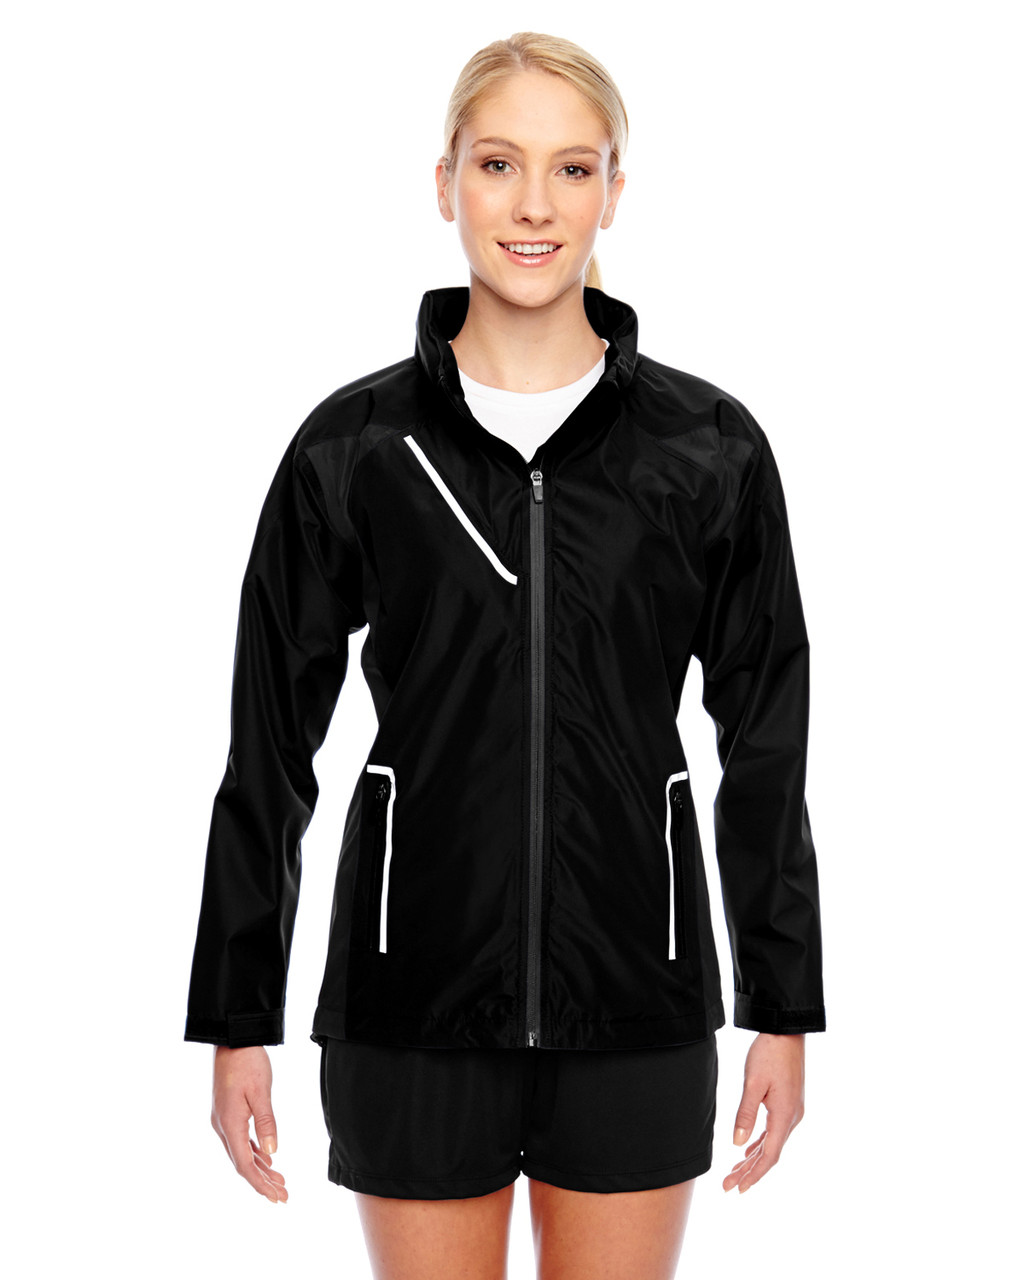 Black - TT86W Team 365 Dominator Waterproof Jacket